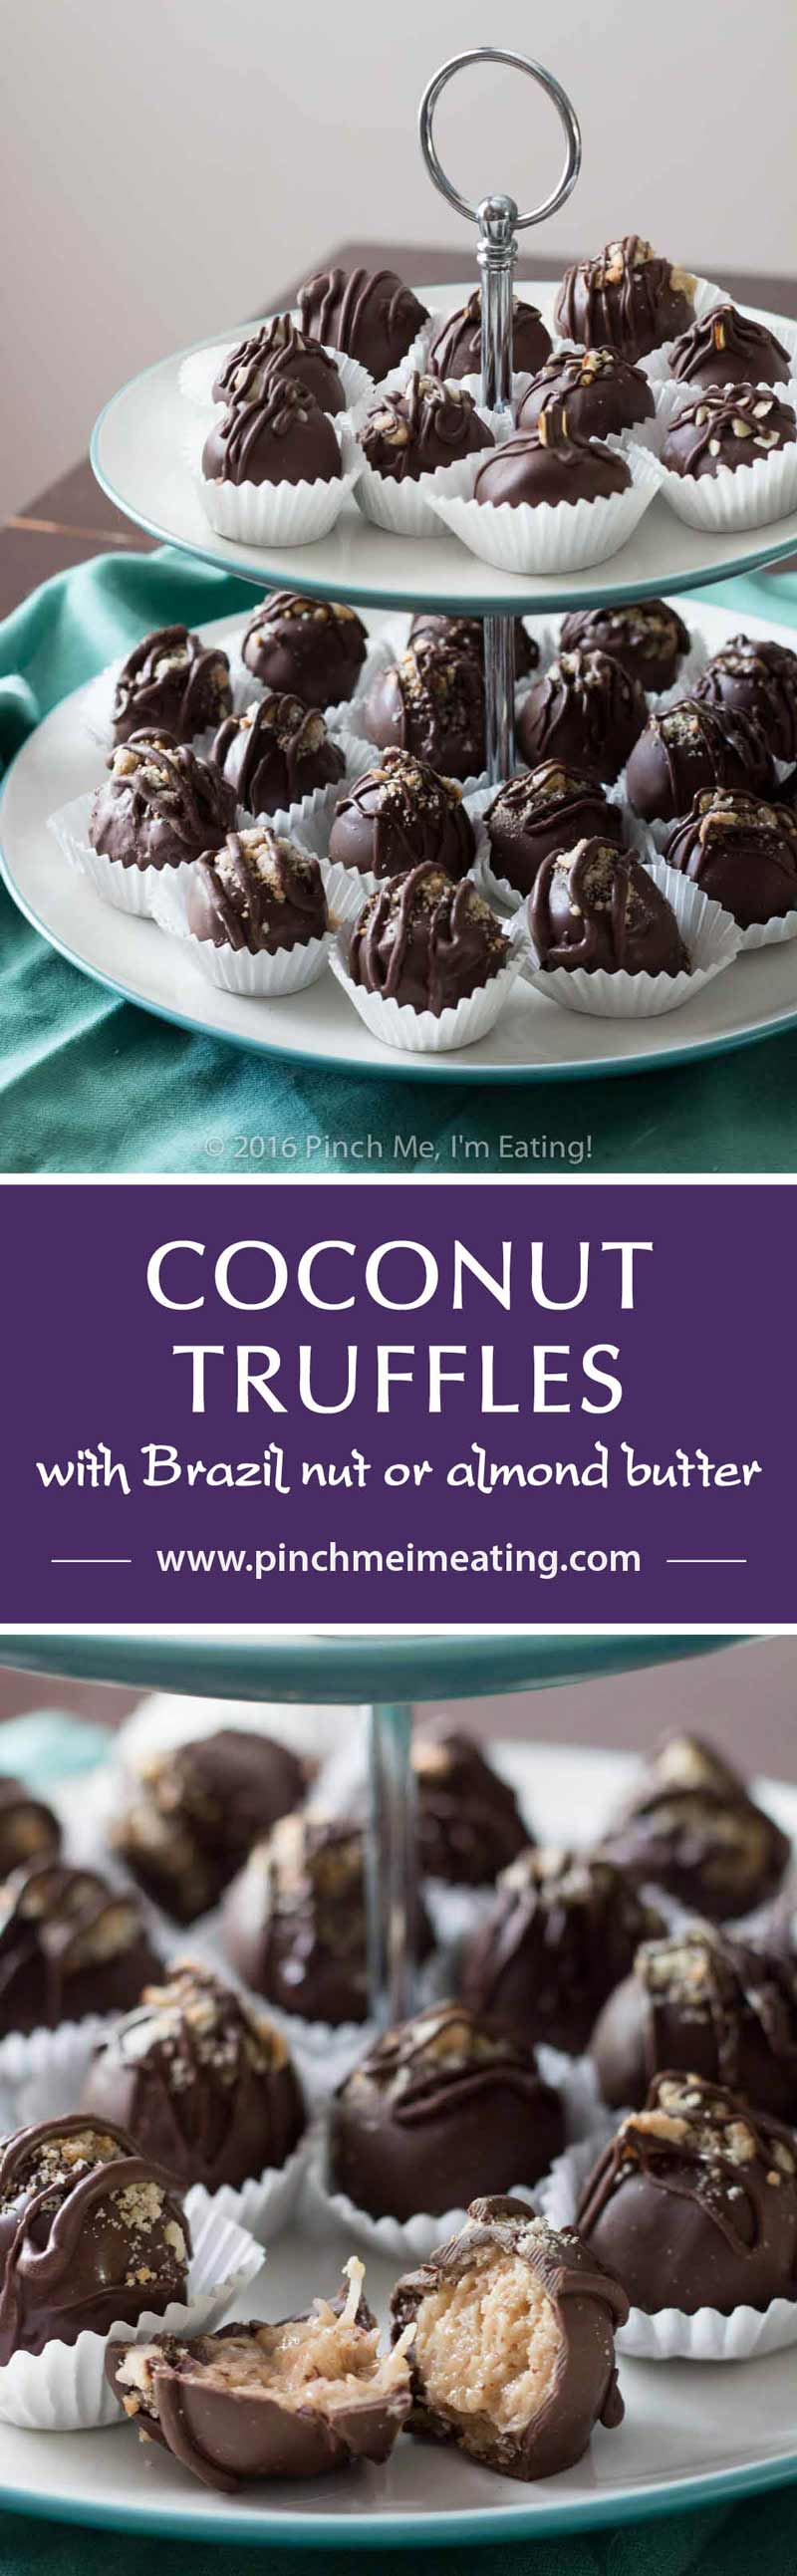 Chocolate covered coconut truffles with Brazil nut or almond butter are a rich, decadent, and easy gourmet dessert perfect for parties (or for treating yourself)! Best of all, you can make this recipe in advance! You can also use cashew butter or macadamia nut butter.   www.pinchmeimeating.com